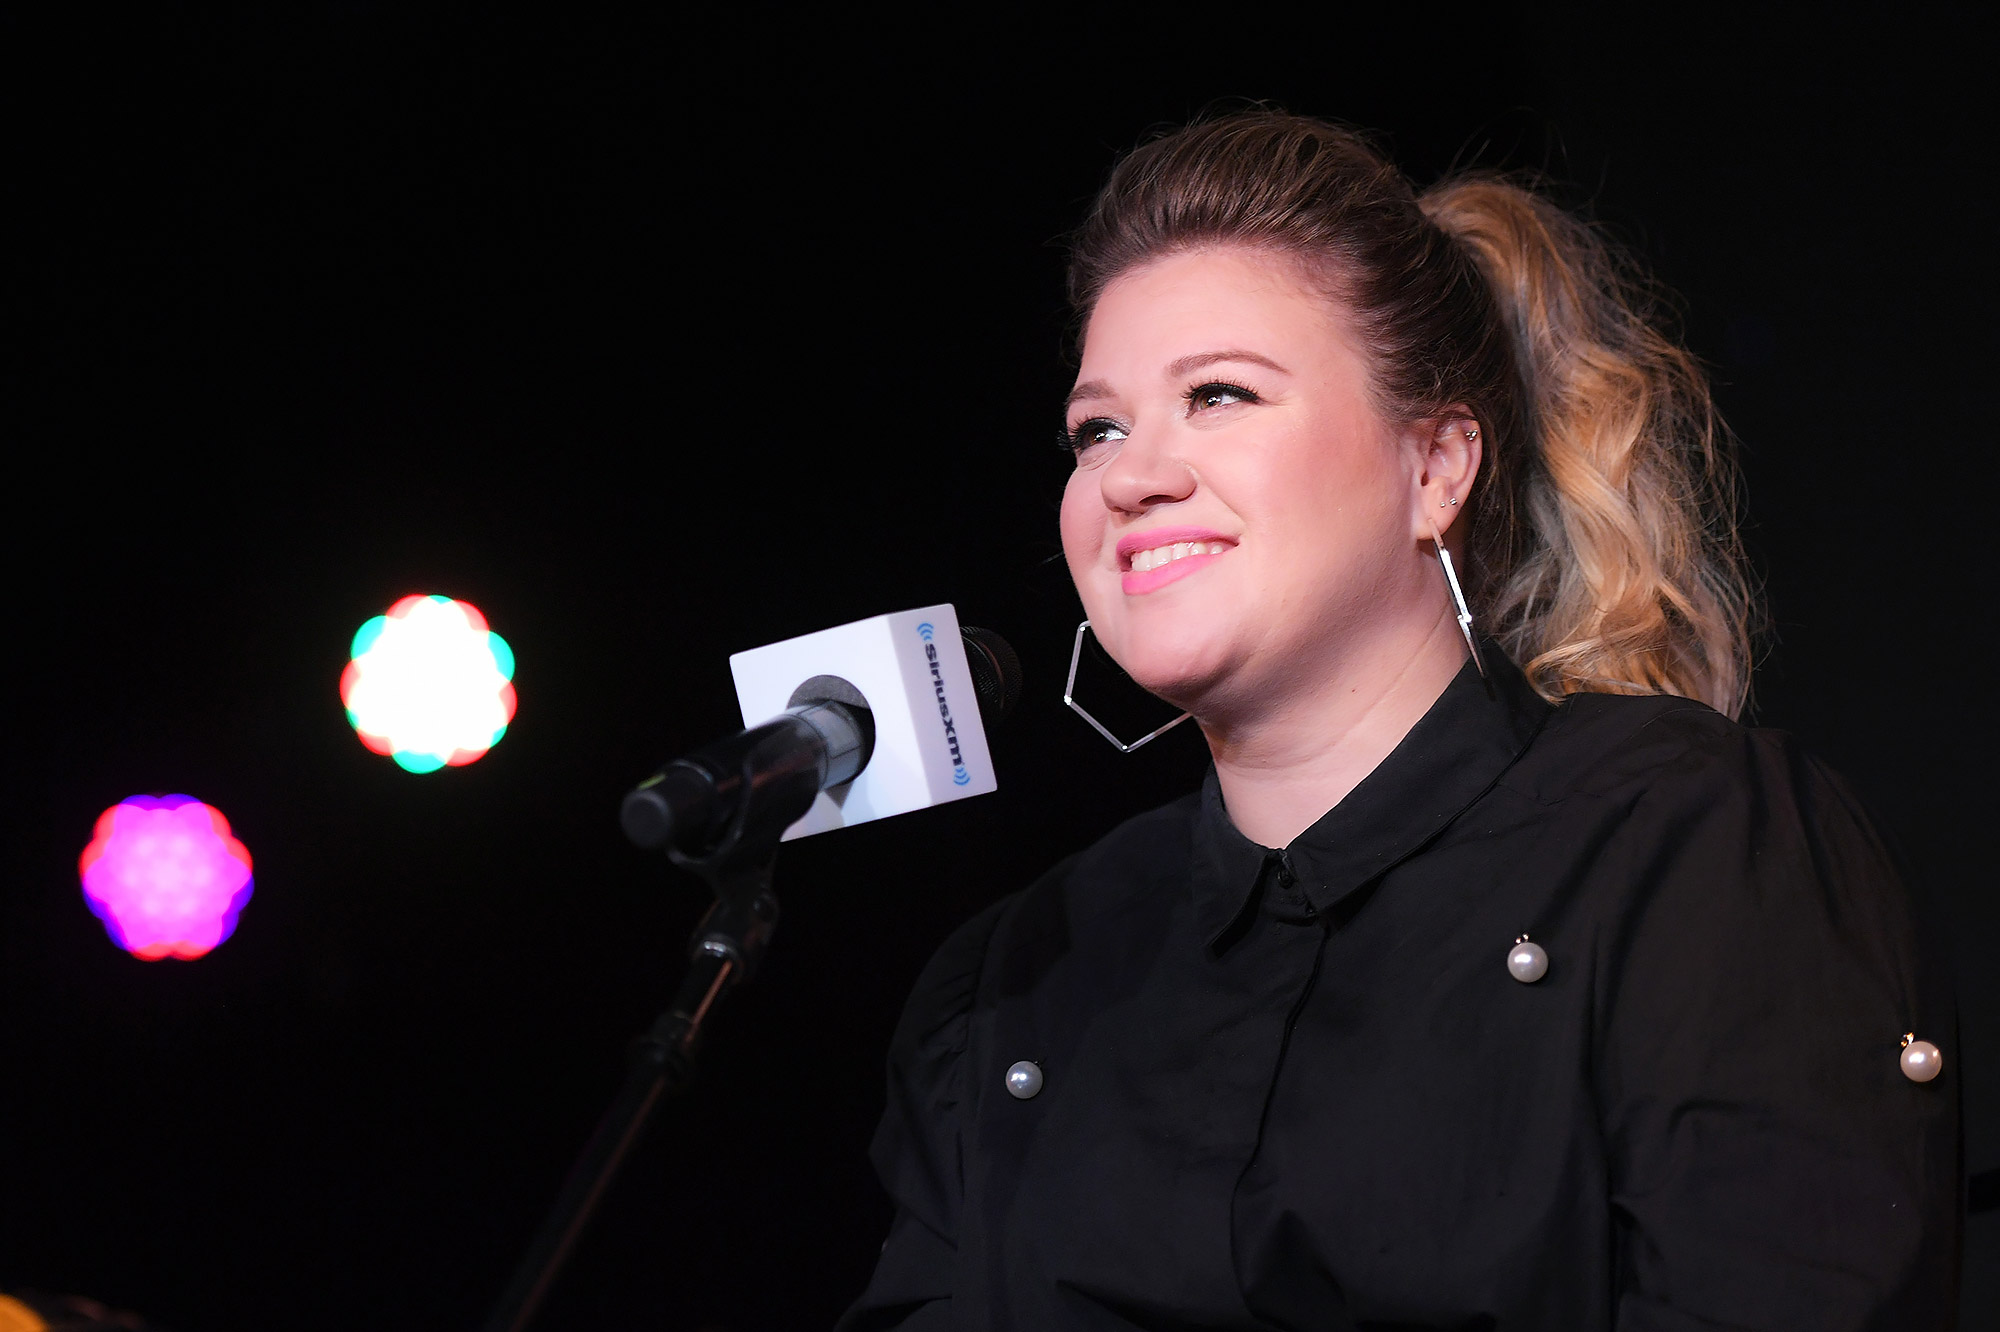 Kelly Clarkson's 'Meaning of Life' Album Listening Session For SiriusXM At The Highline Ballroom